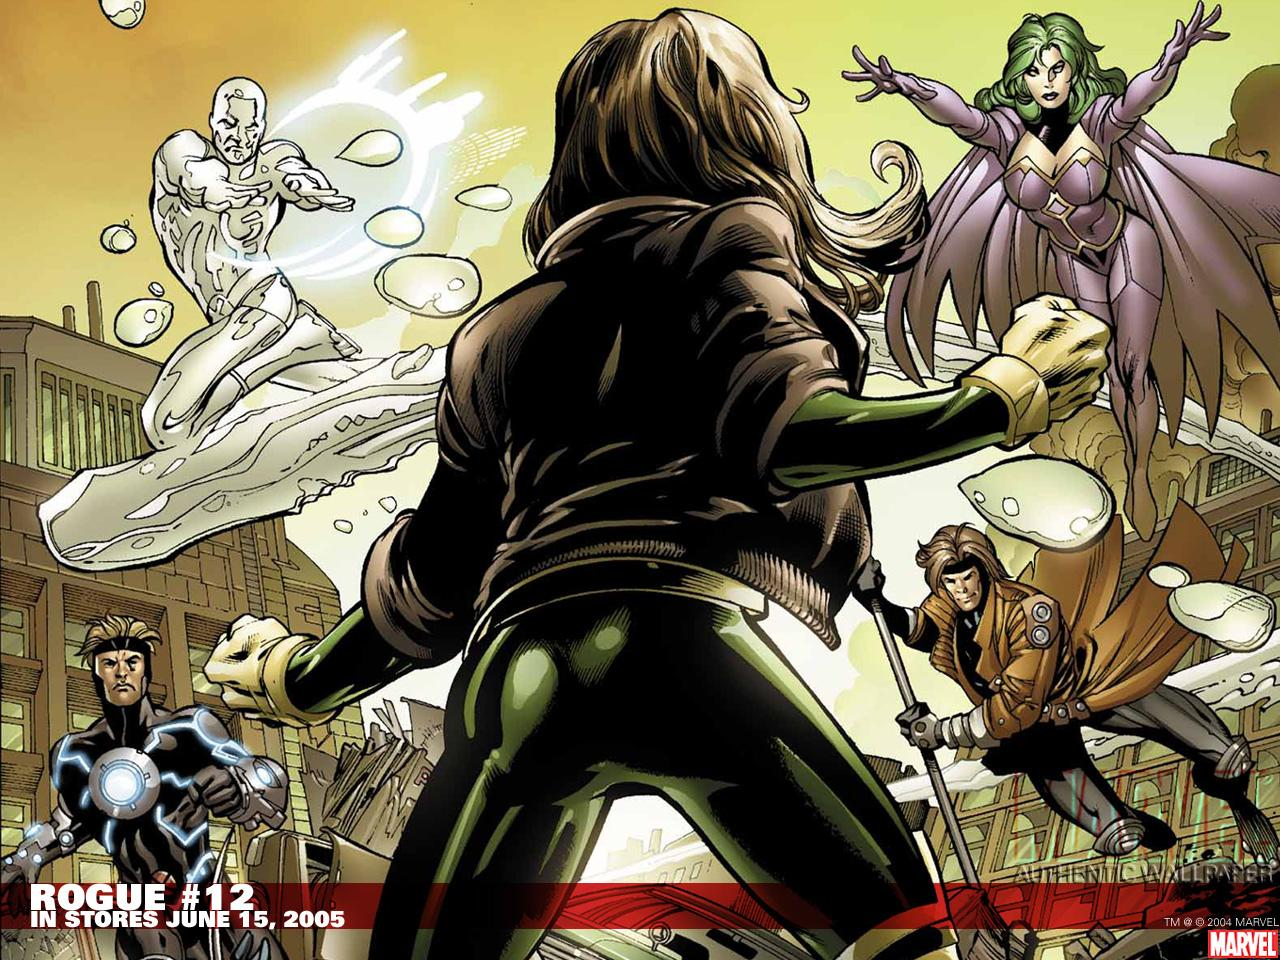 Rogue Comics at 1280 x 960 size wallpapers HD quality